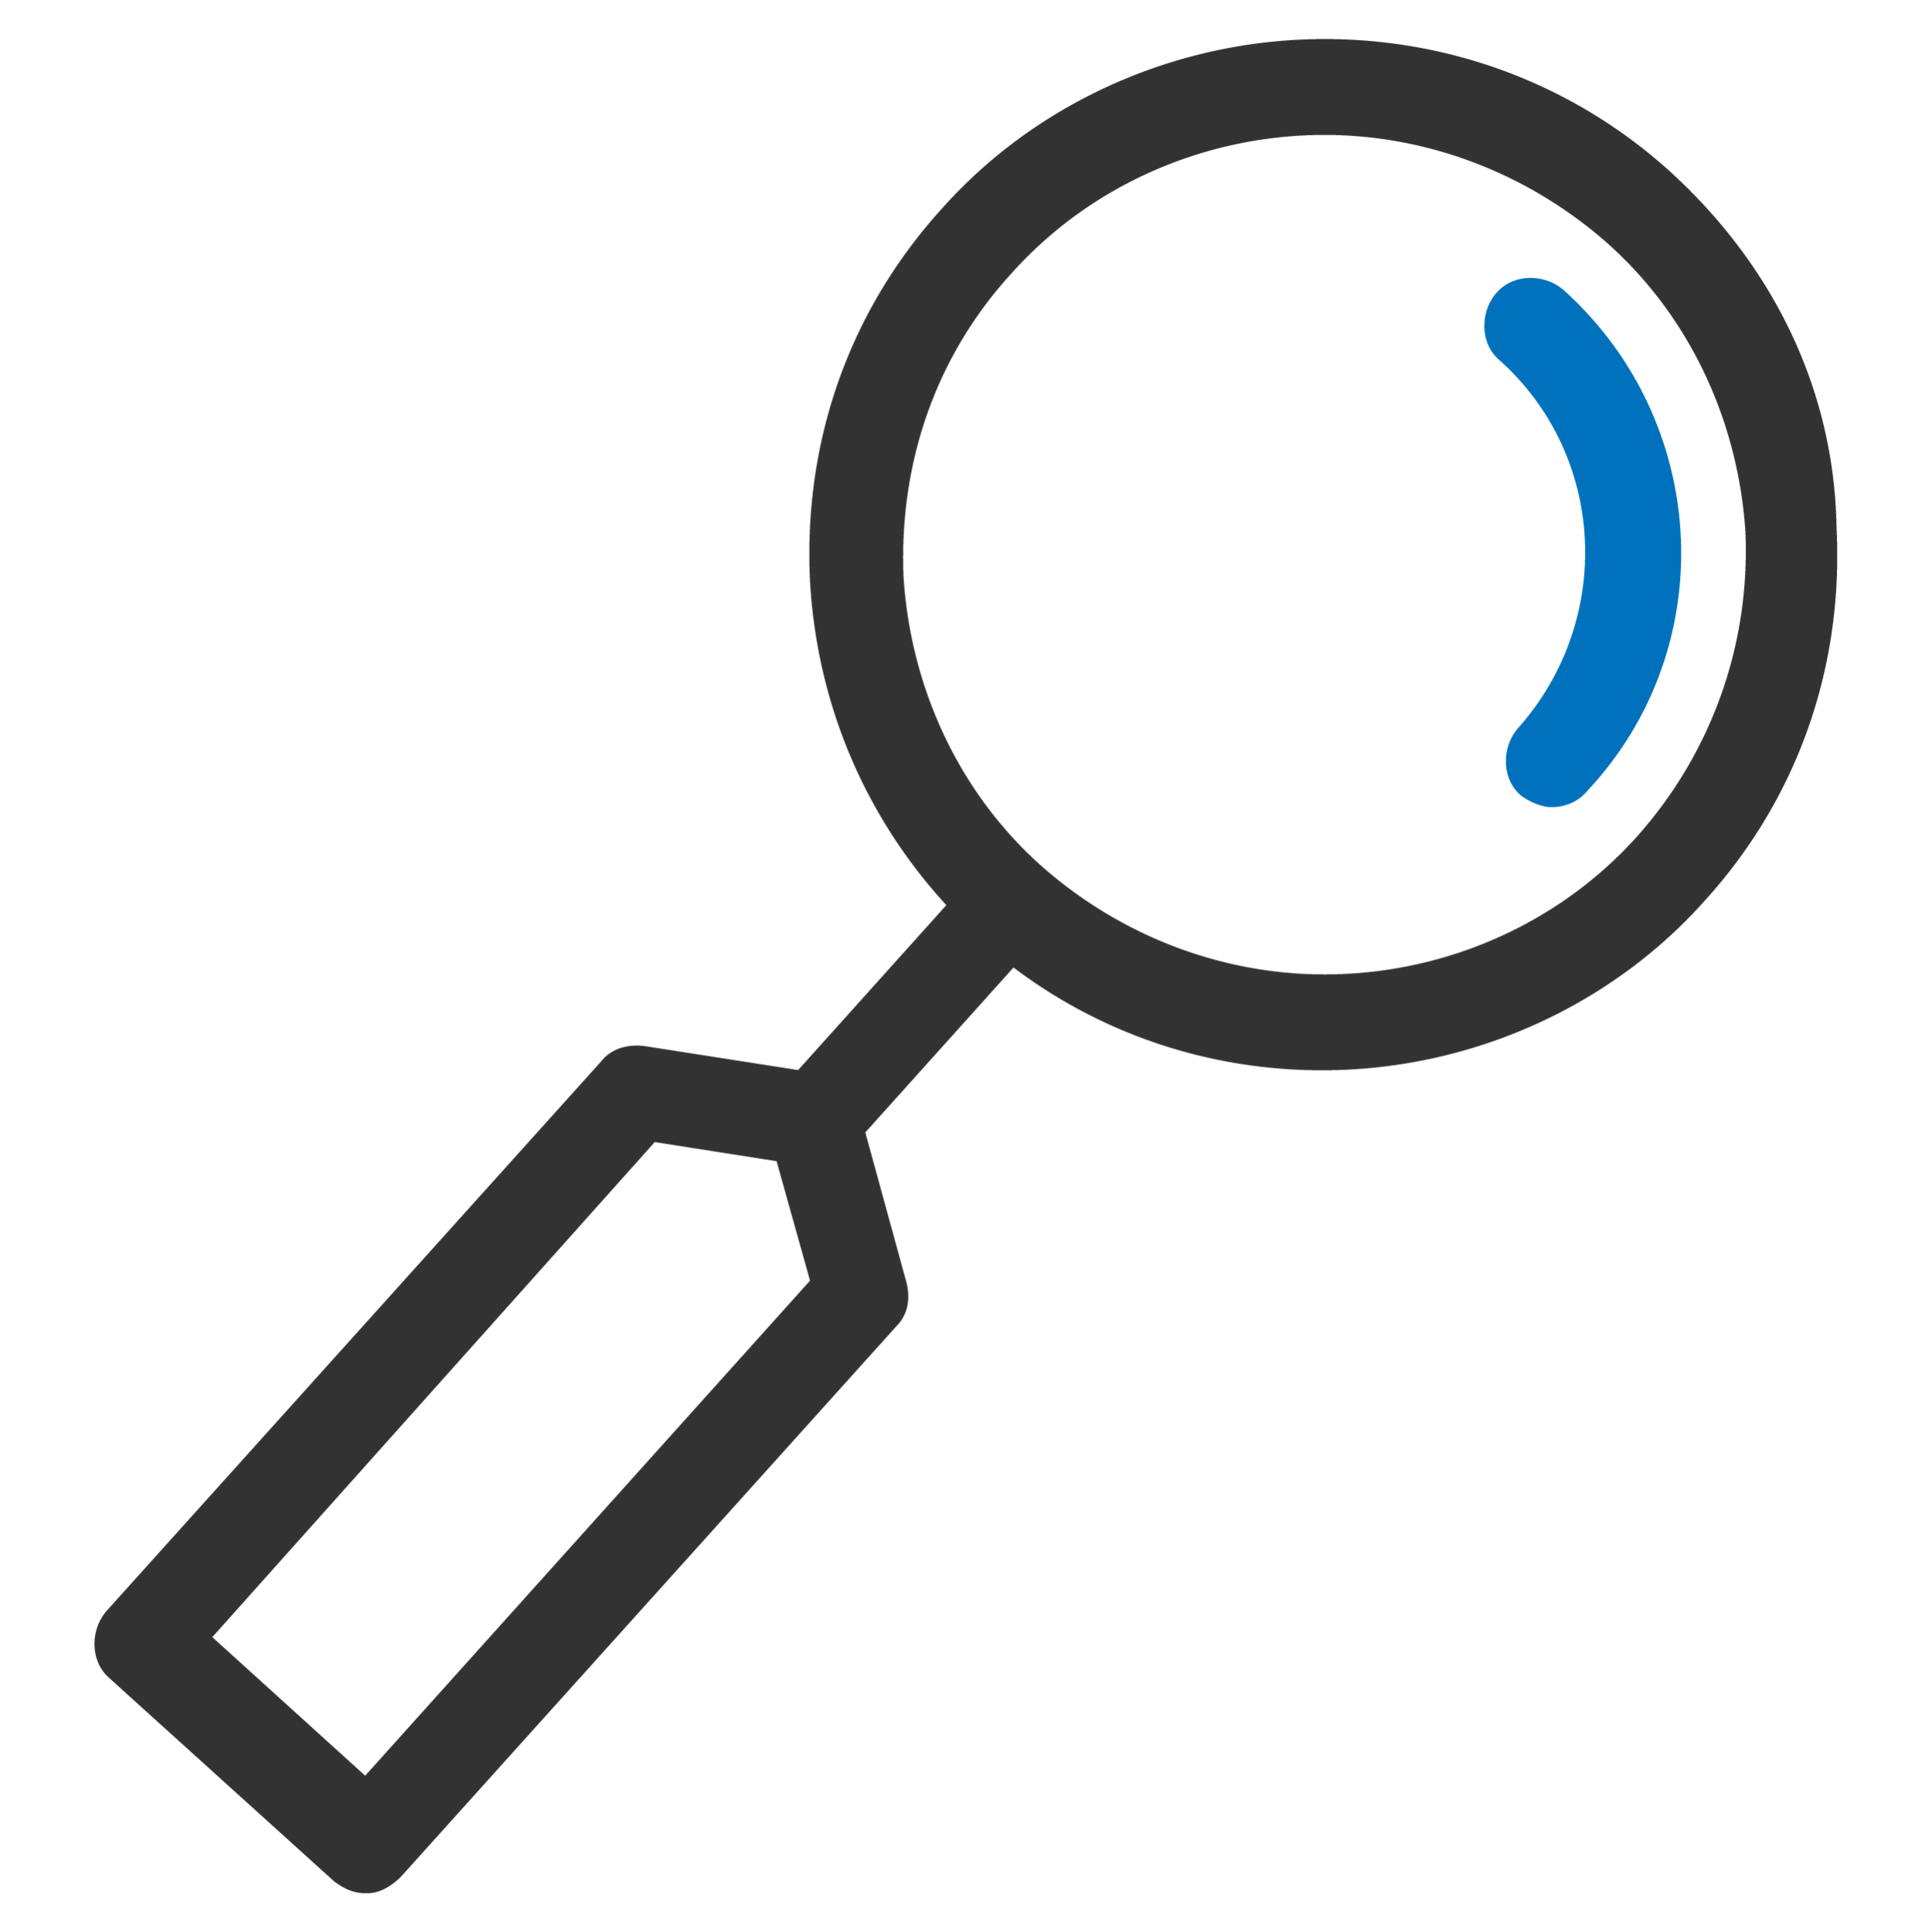 icon_magnifying_glass.png